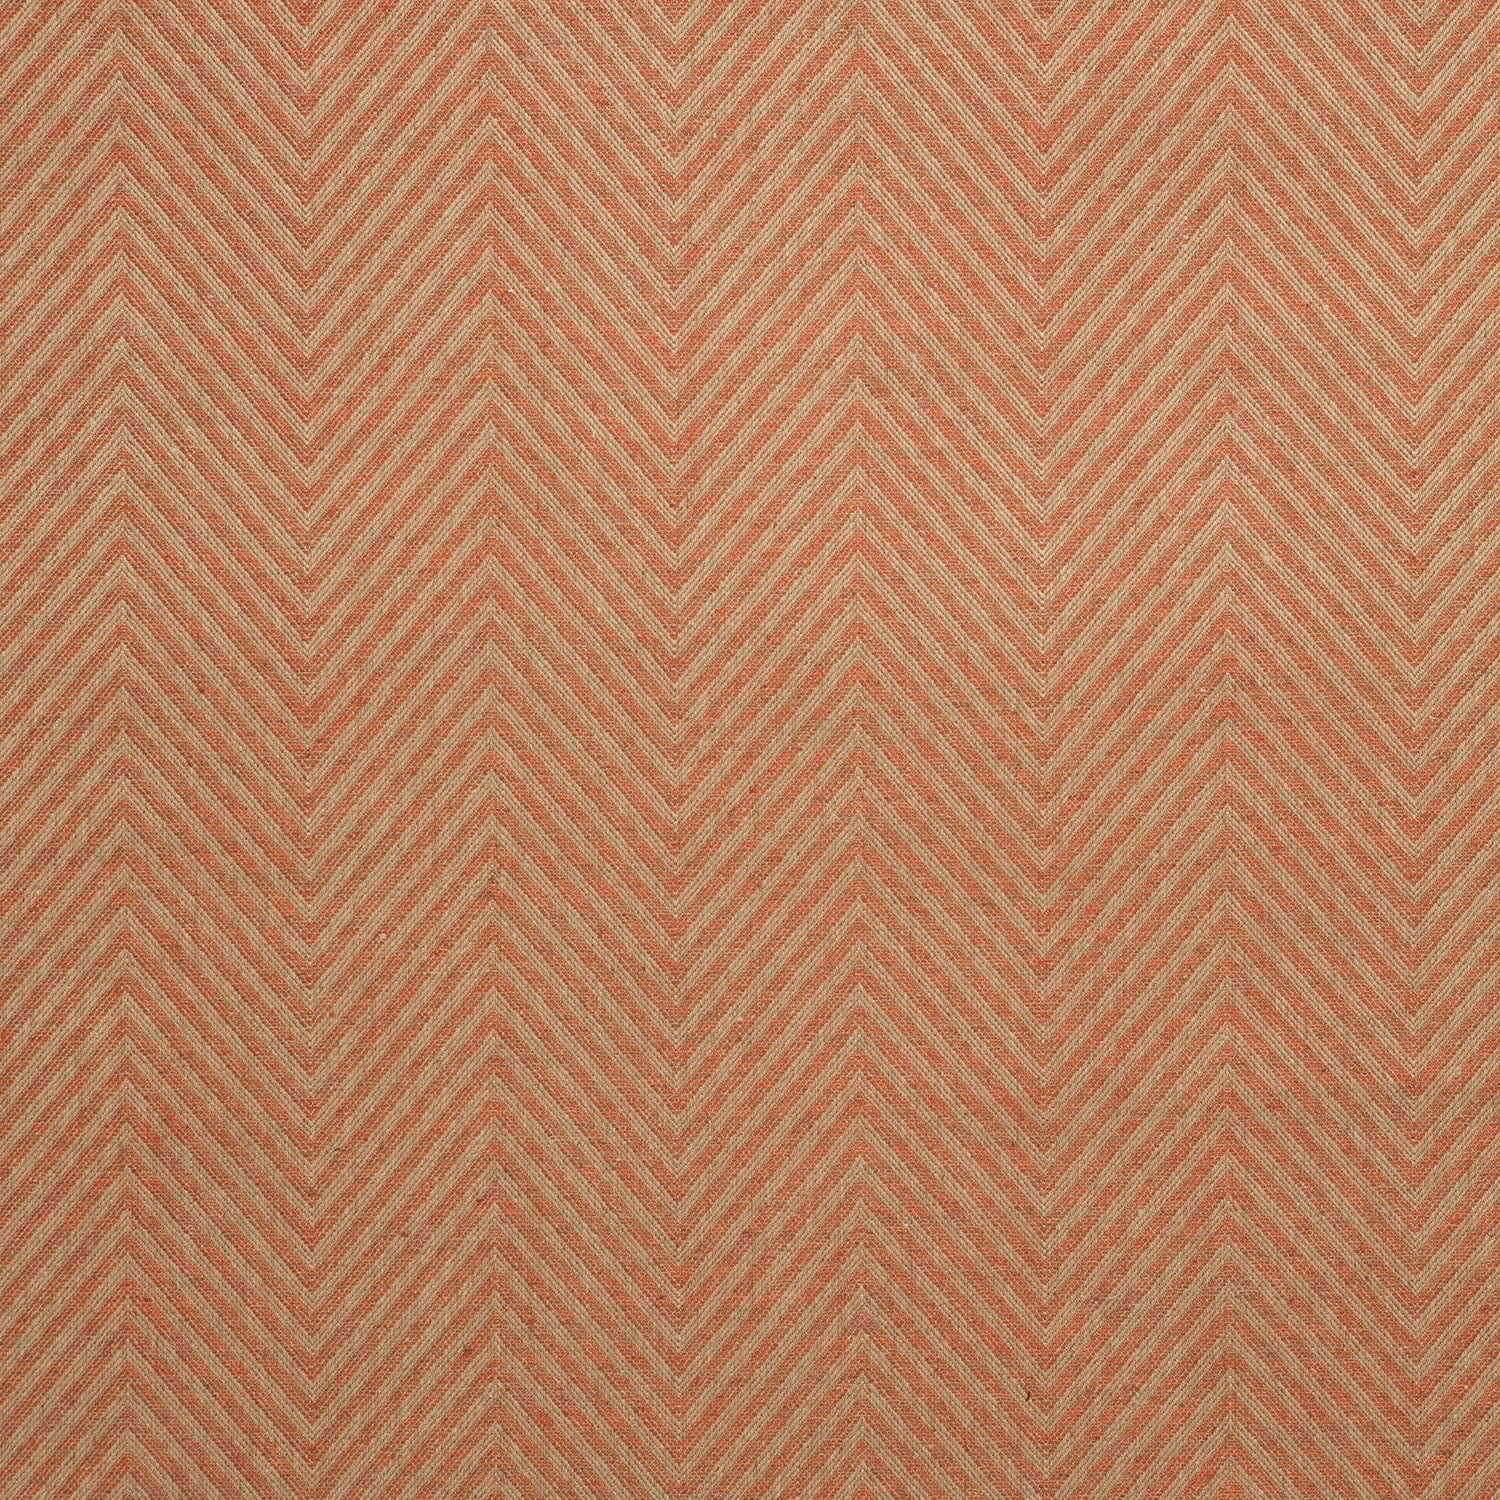 Fabric swatch of a orange herringbone weave fabric for curtains and upholstery